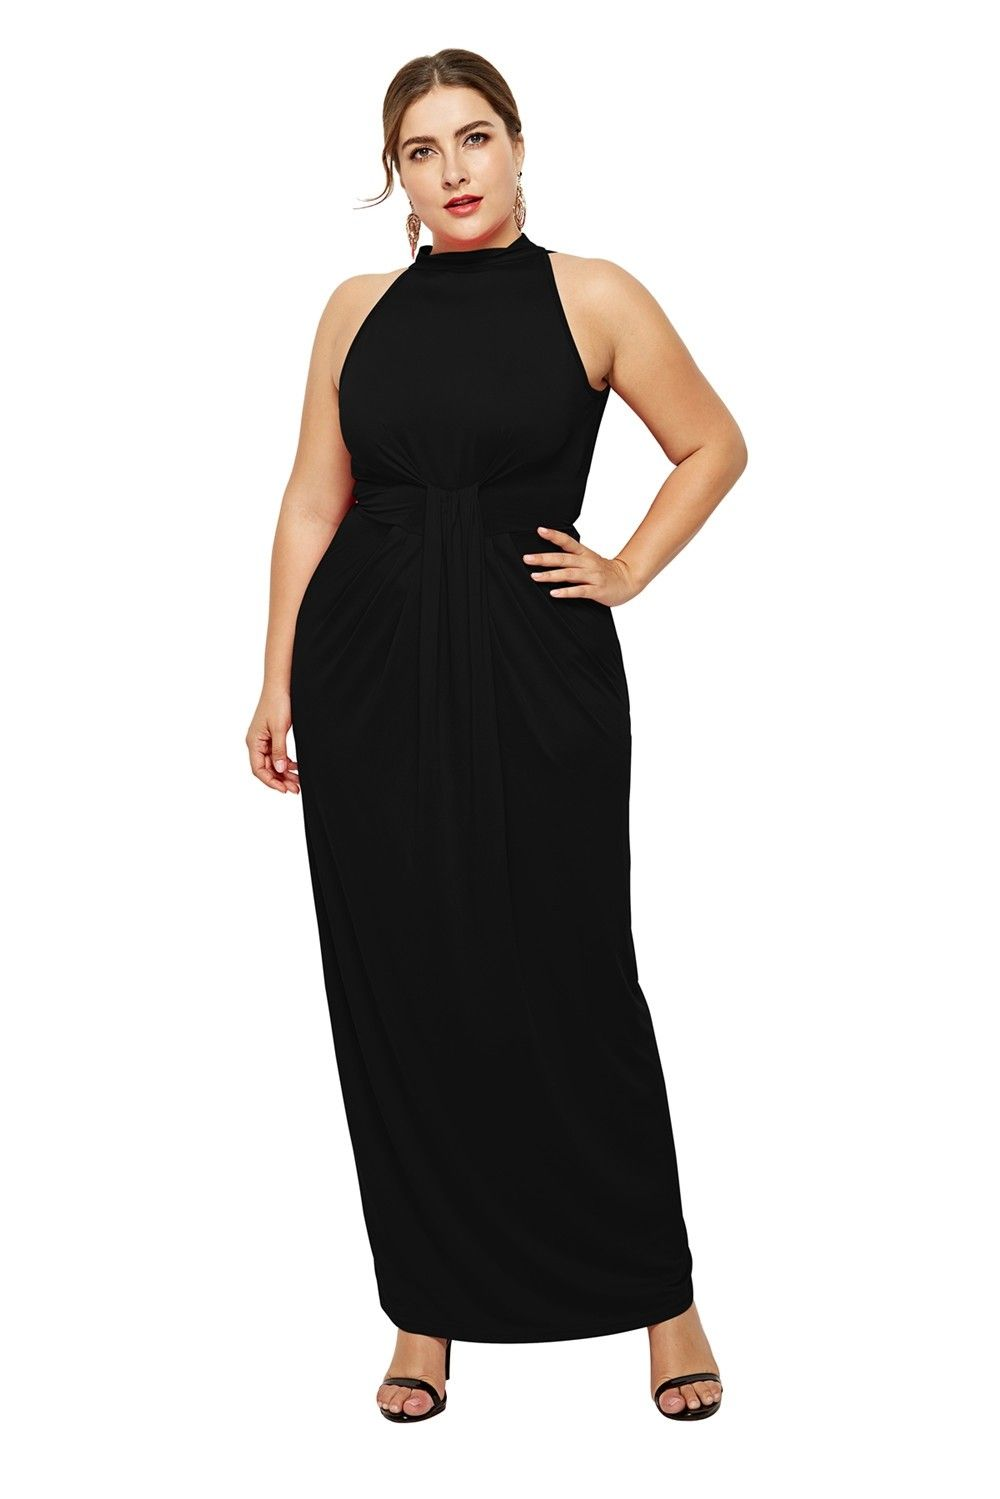 1005488b0ddf1 High Neck Sleeveless Black Jersey Sheath Spring Fall Plus Size Woman ...